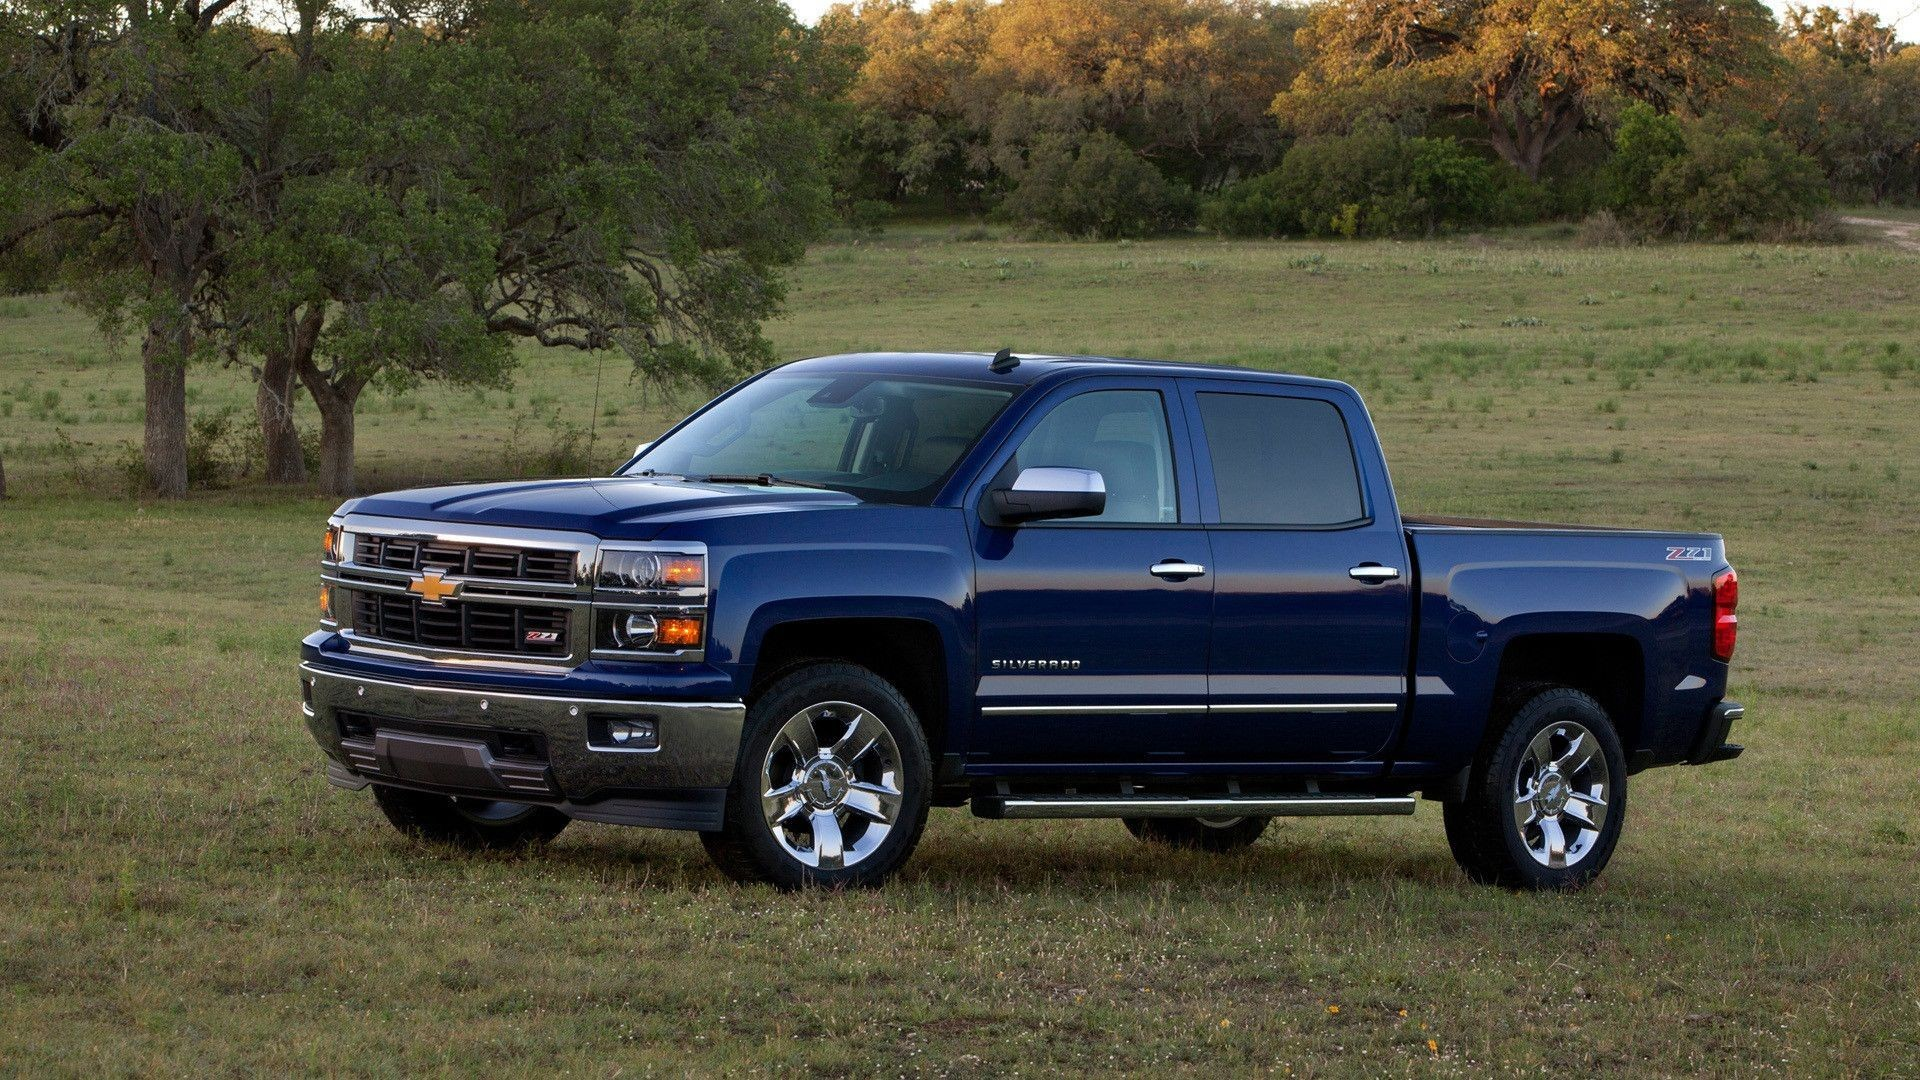 1920x1080 Chevrolet Silverado iPhone 6/6 plus wallpaper | Download Wallpaper |  Pinterest | Car wallpapers and Wallpaper